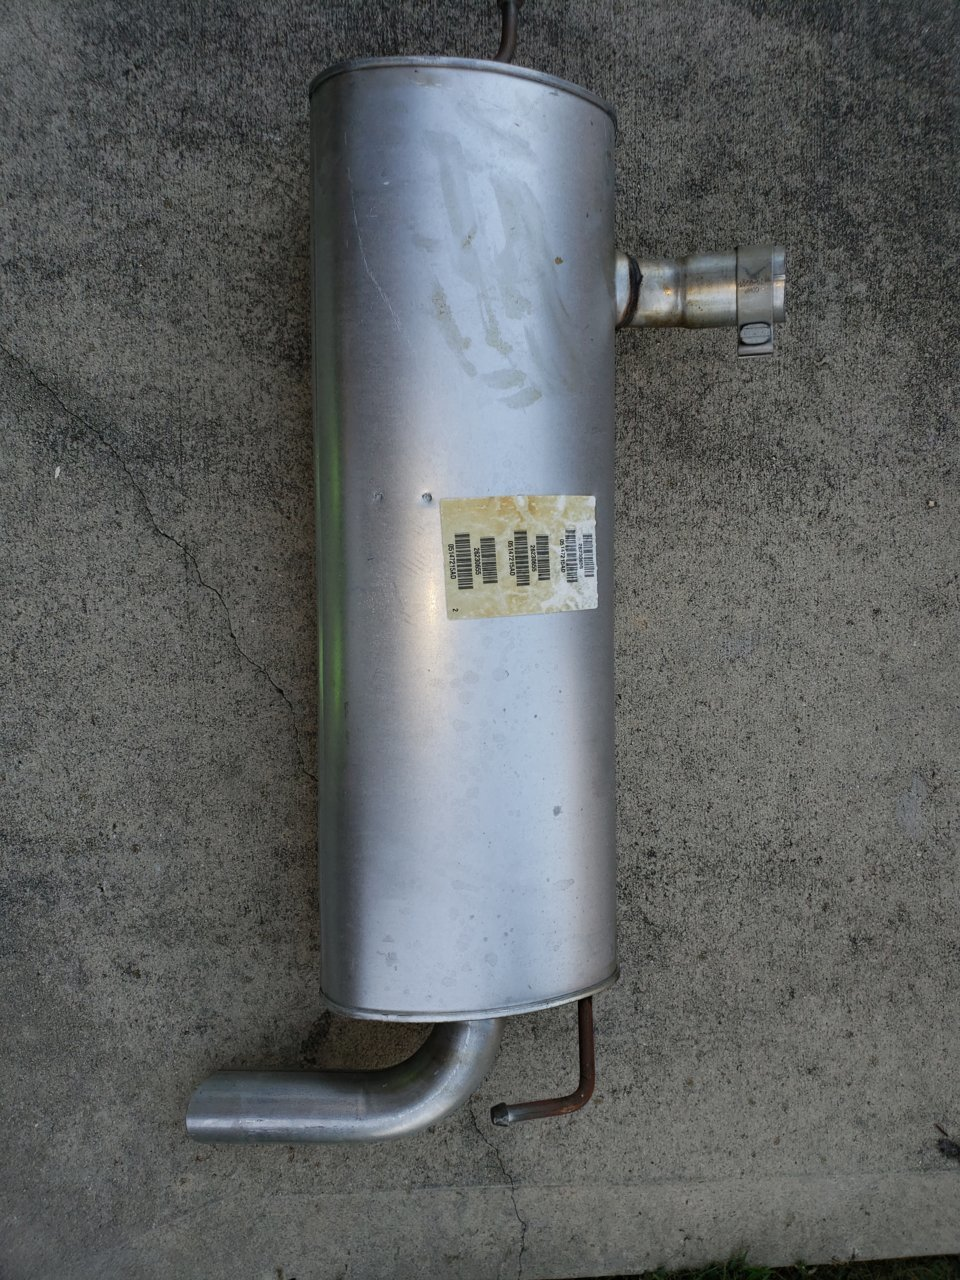 Jeep Jk Muffler >> FS: 2014 Jeep Wrangler Muffler for Sale | Jeeps.net Forum